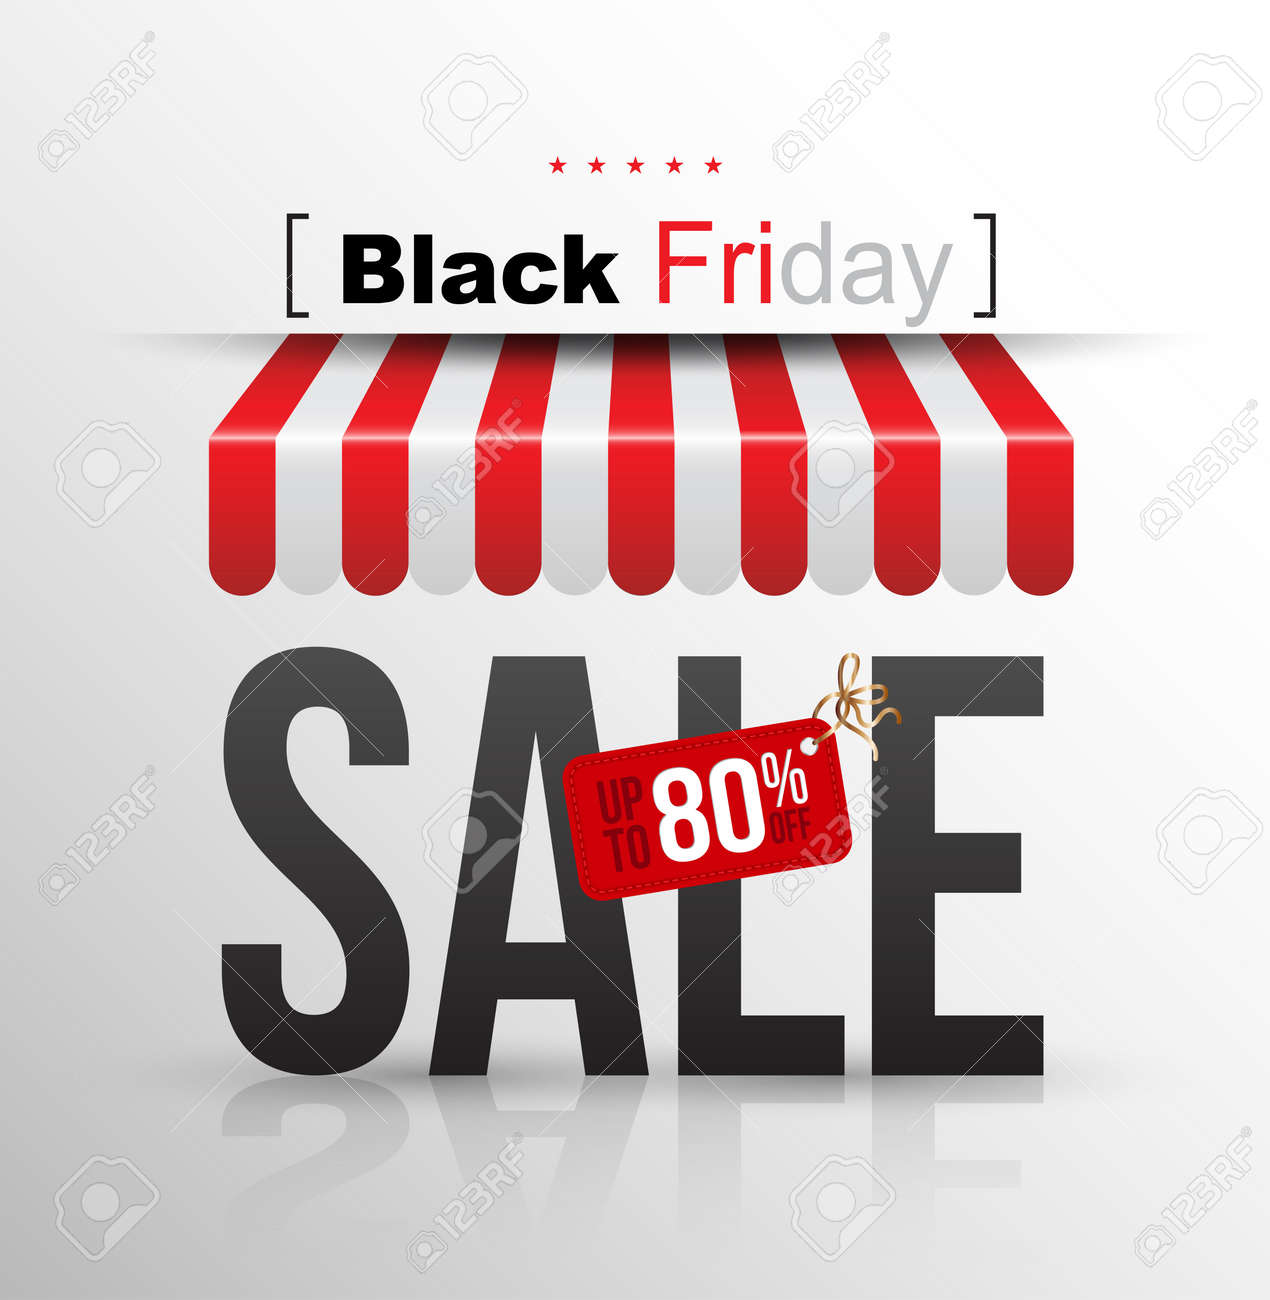 Black Friday Wochenende Stock Photo